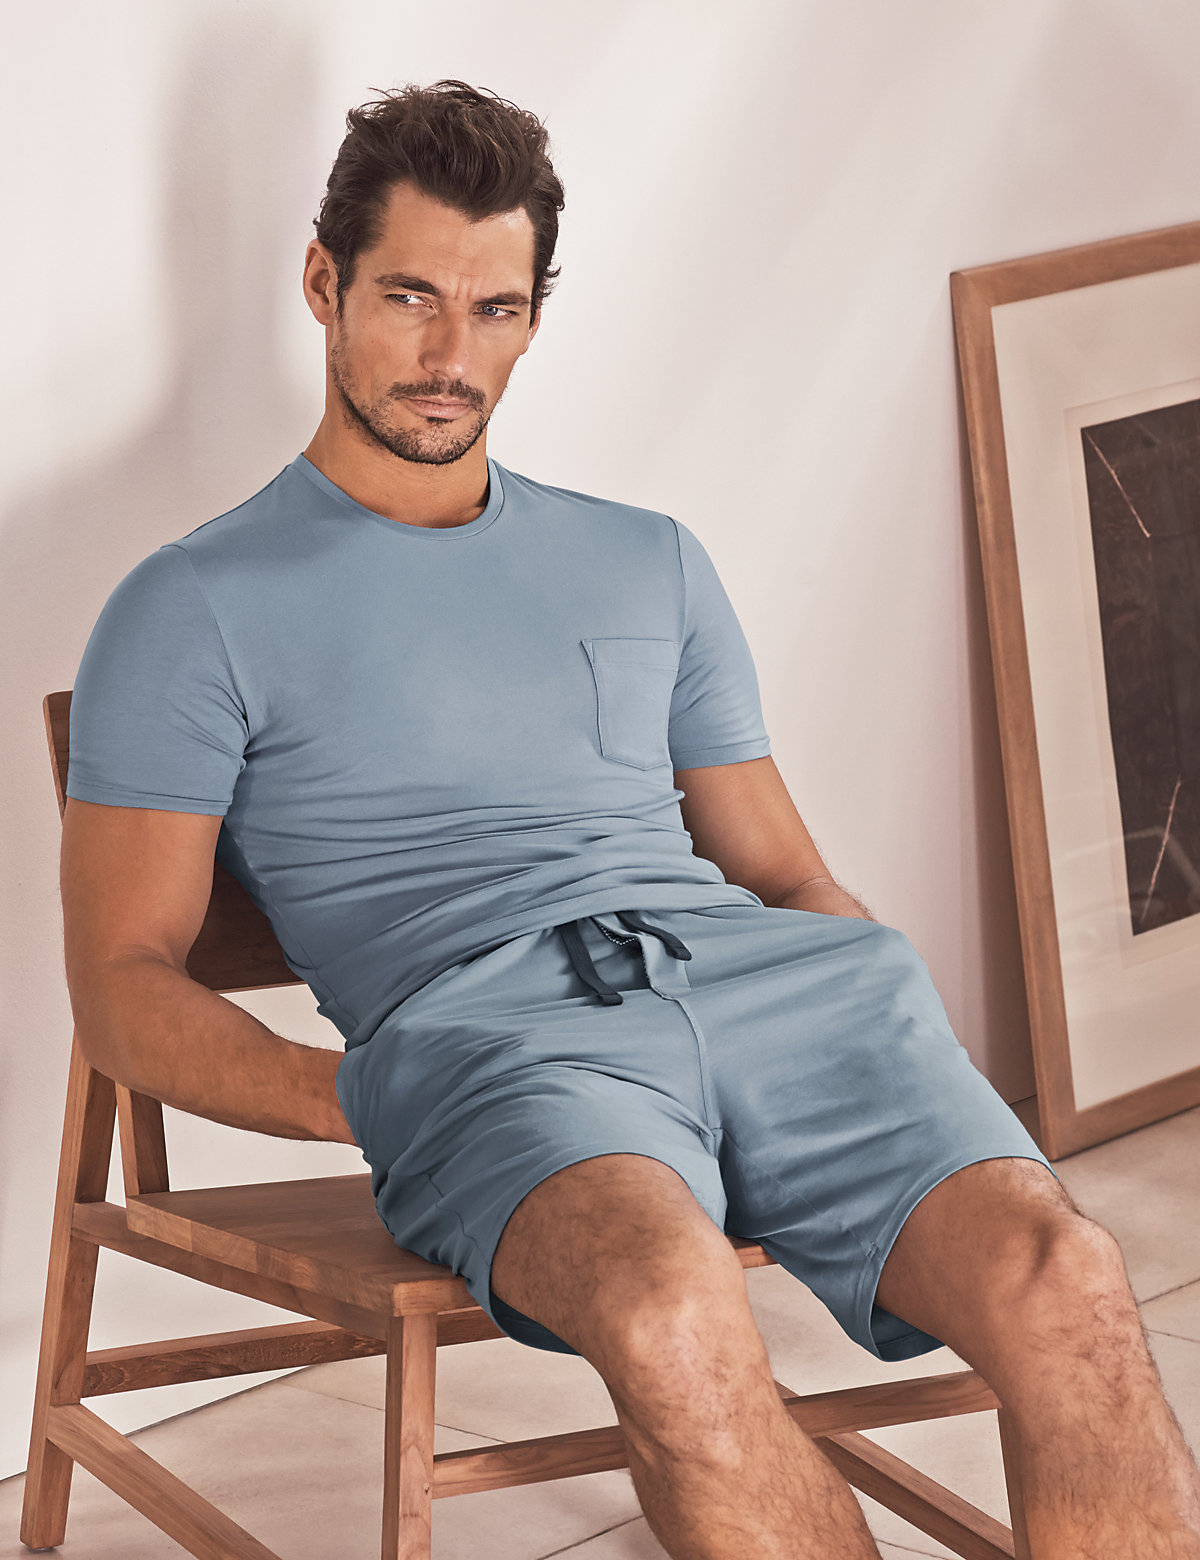 male models dating celebrities Channing tatum, norman reedus, and more male celebrities who you forgot started as models female models can strike a certain chord in the culture and elevate themselves to icon status on the.